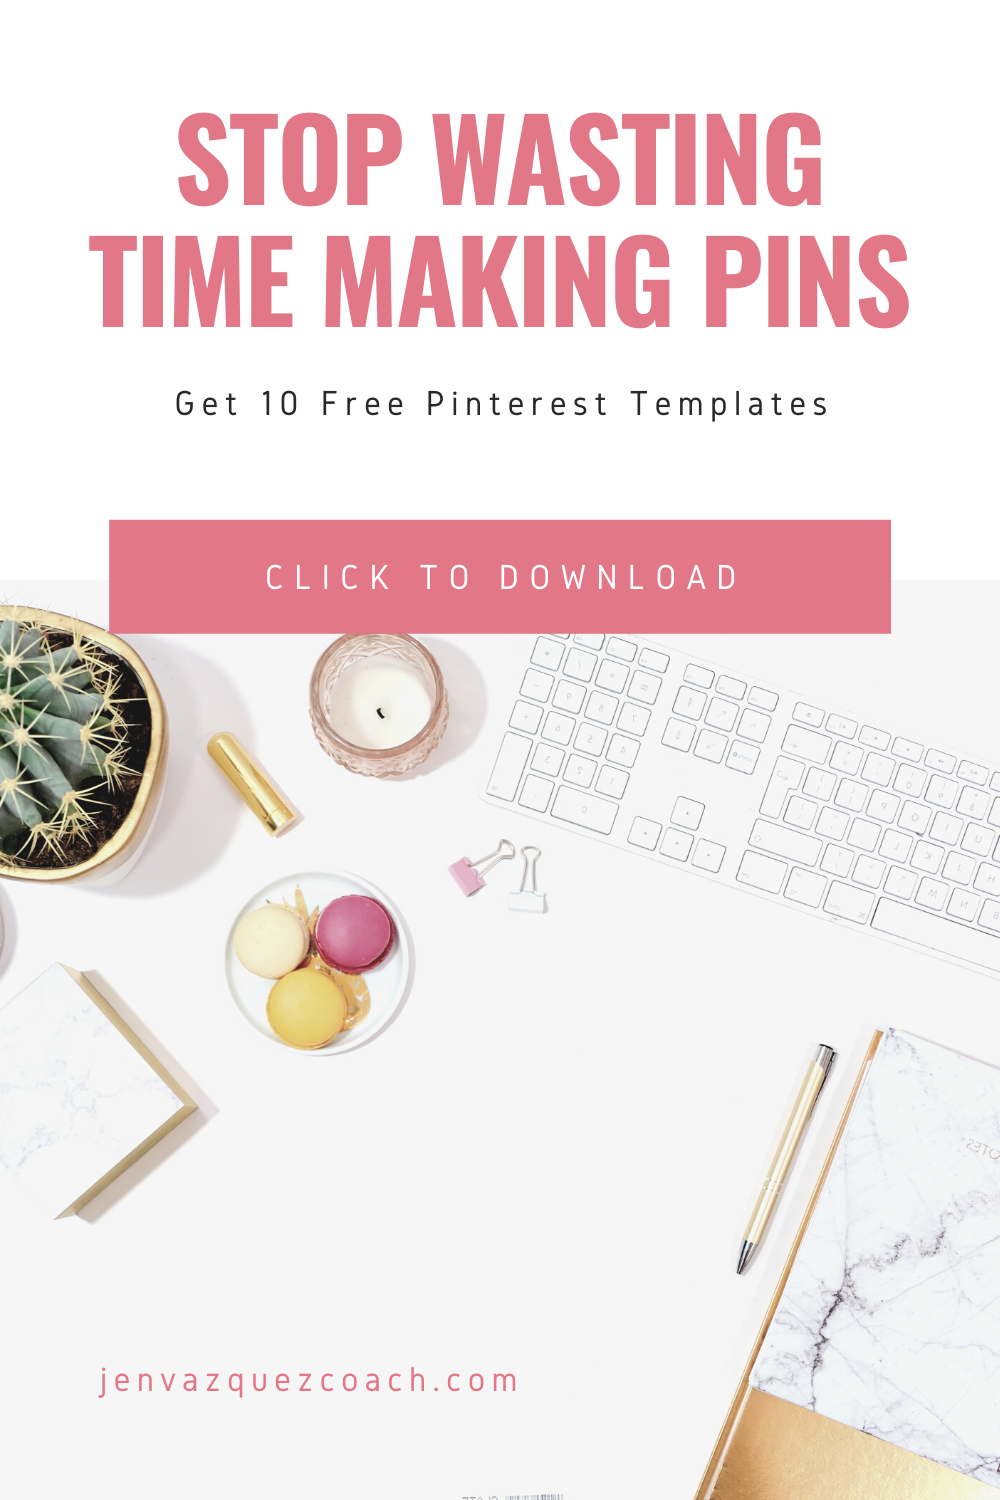 10 Free Pin Templates by Jen Vazquez Marketing Strategist  - Click to download them now